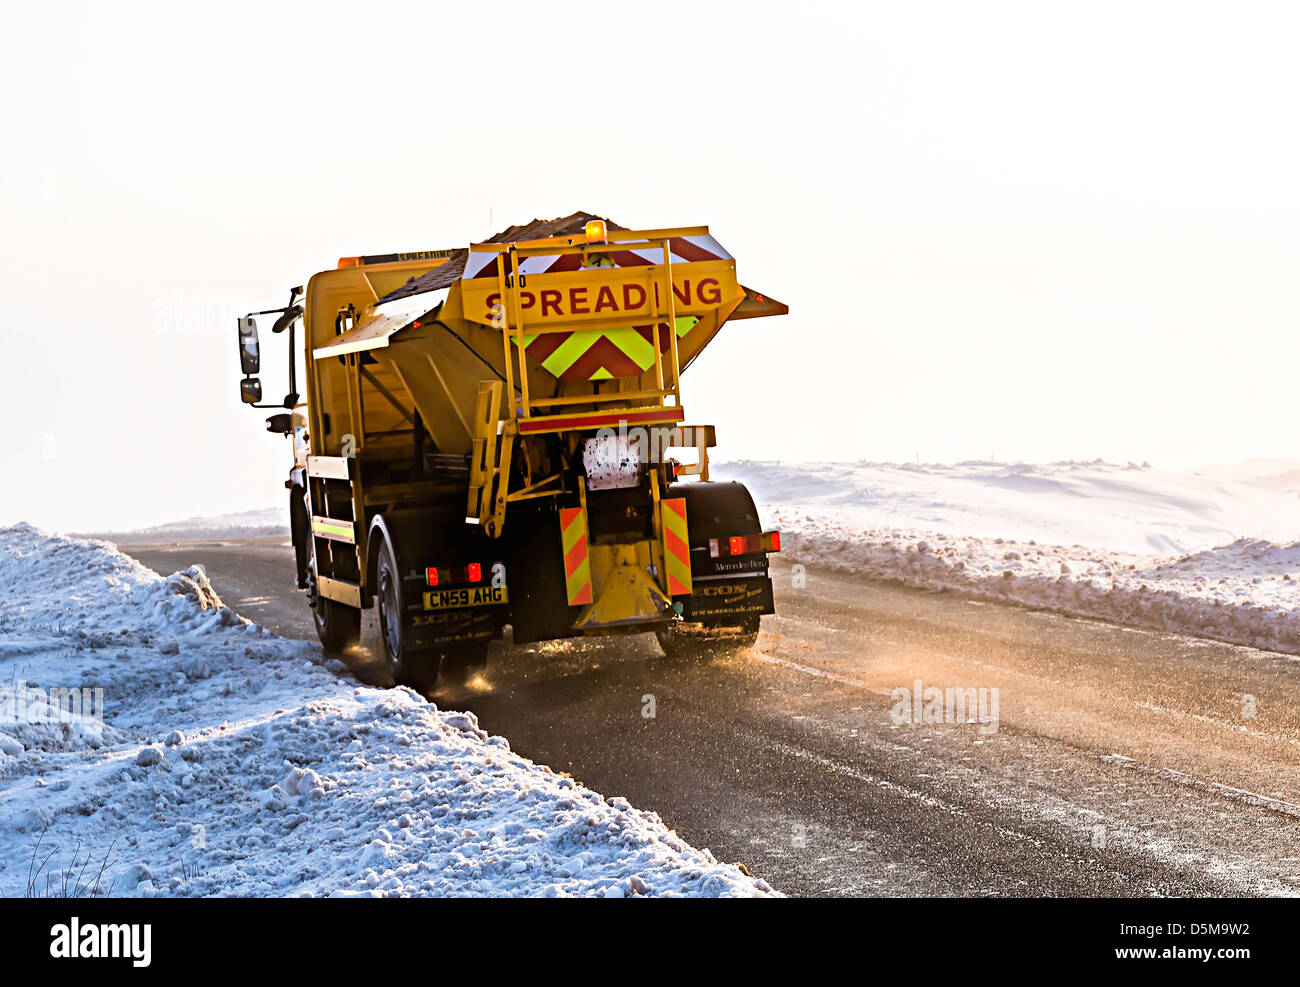 Grit spreading on moorland road to keep it open, Blorenge mountain, Wales, UK - Stock Image